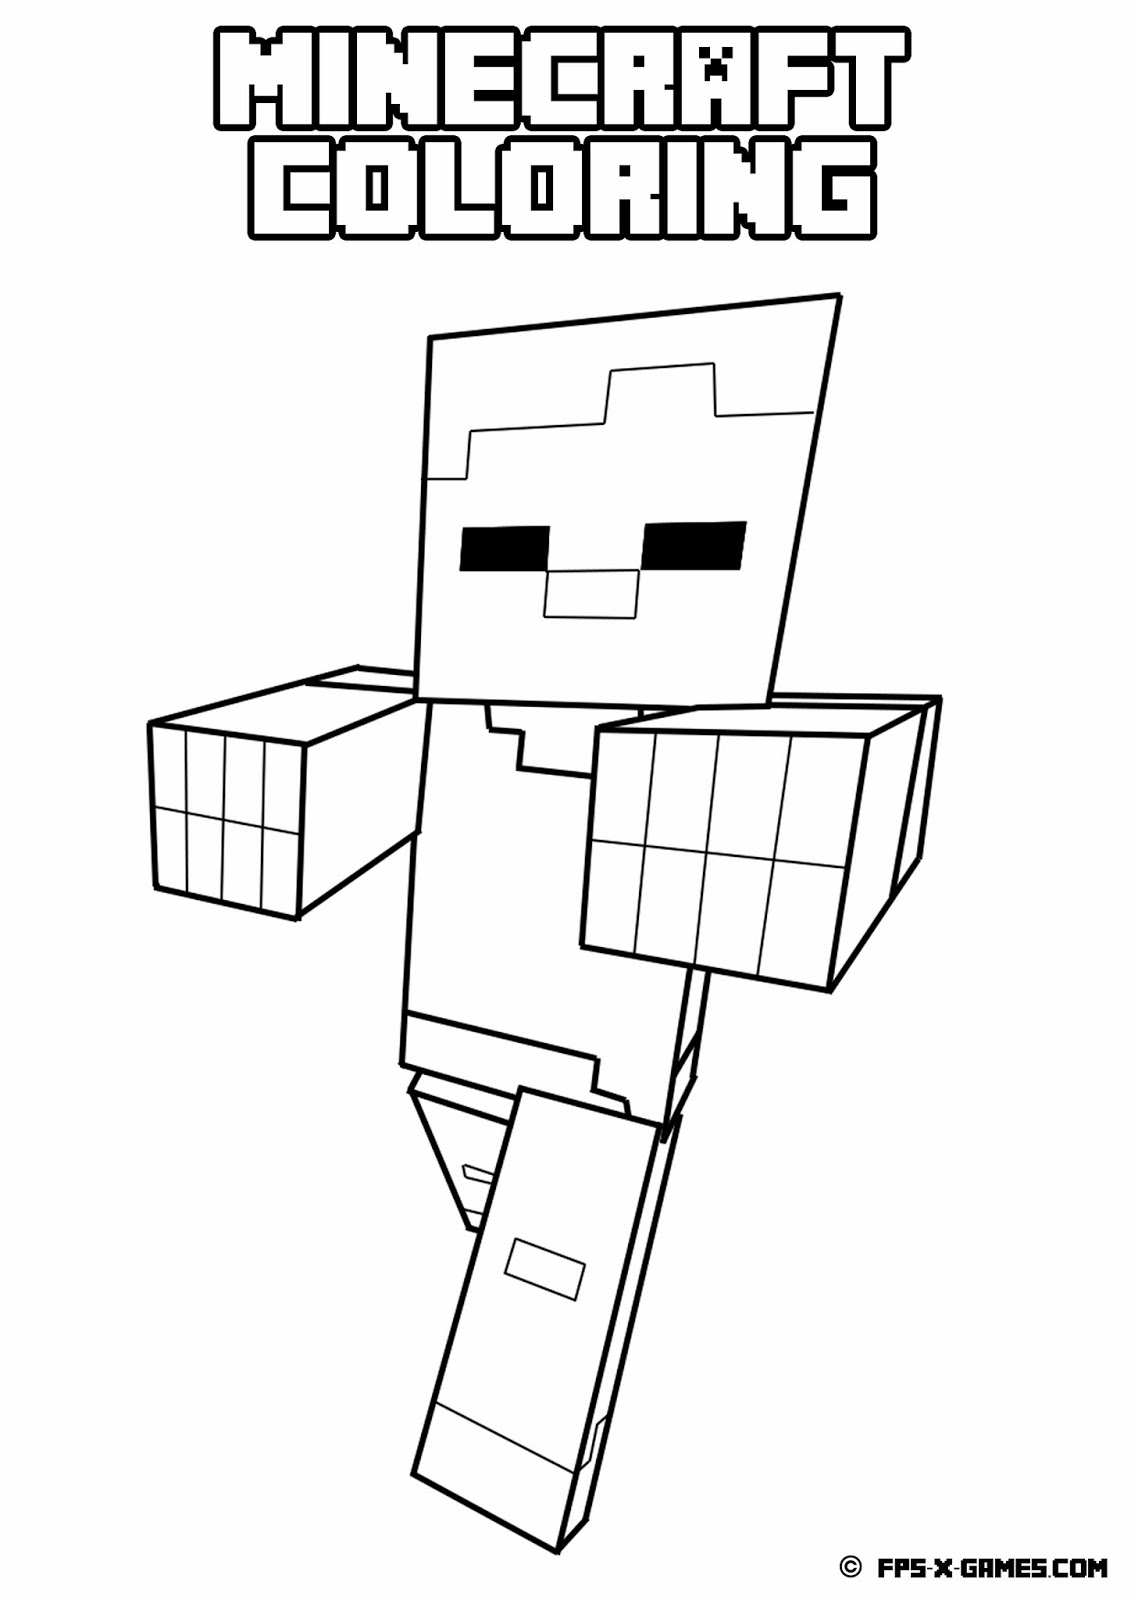 images of minecraft coloring pages minecraft wither skeleton coloring pages high quality of images coloring pages minecraft